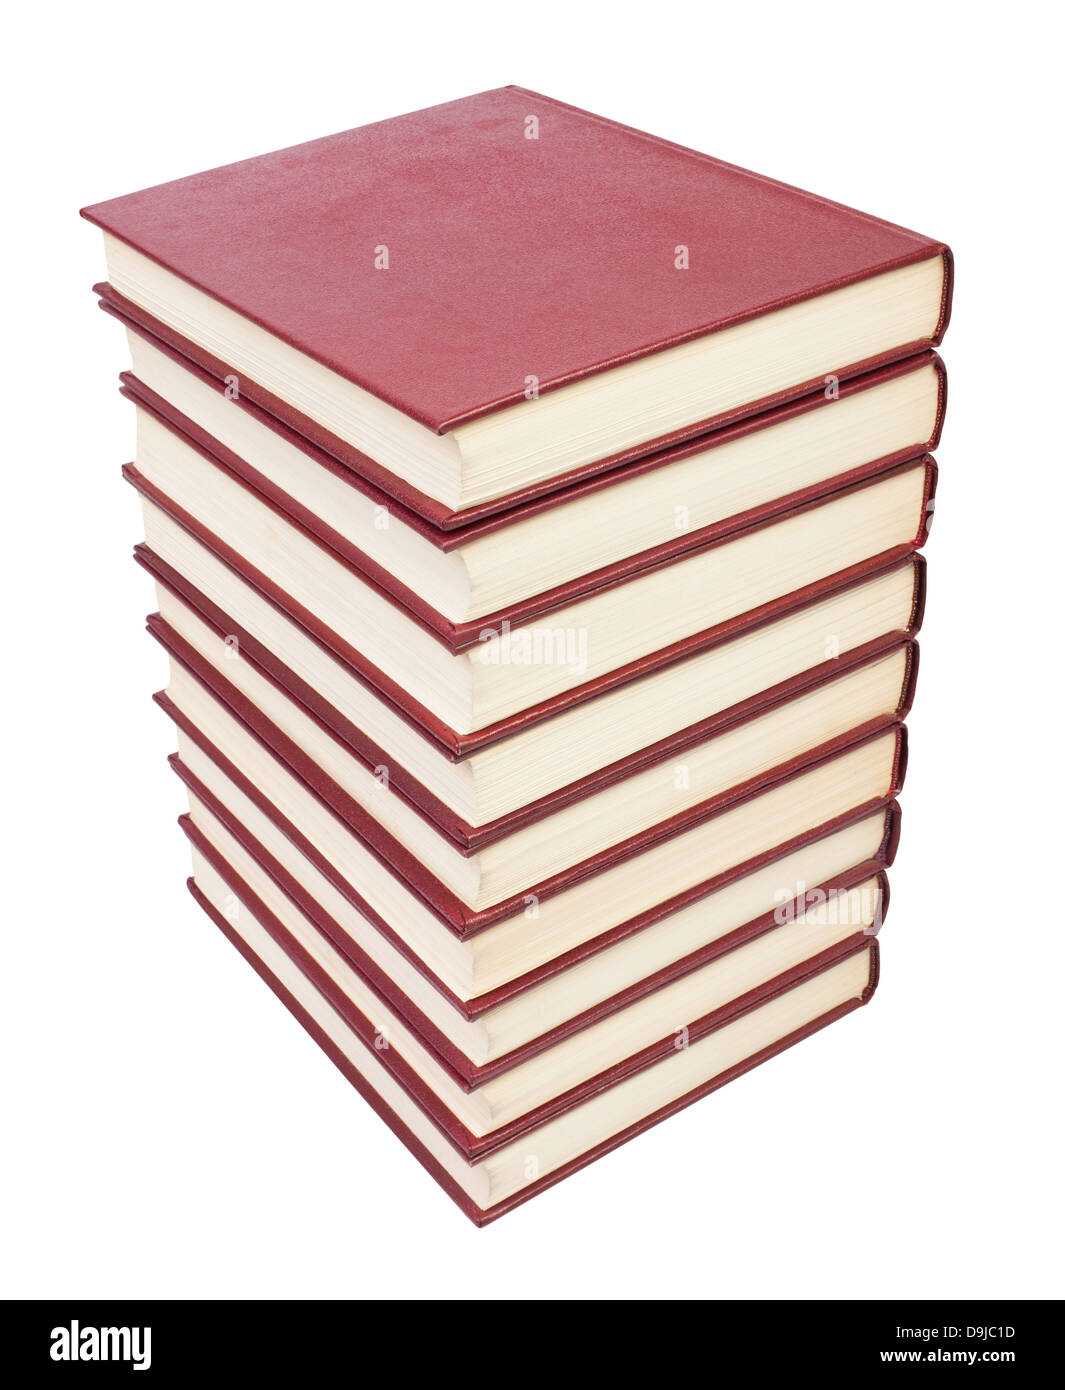 books pile on white background red - Stock Image